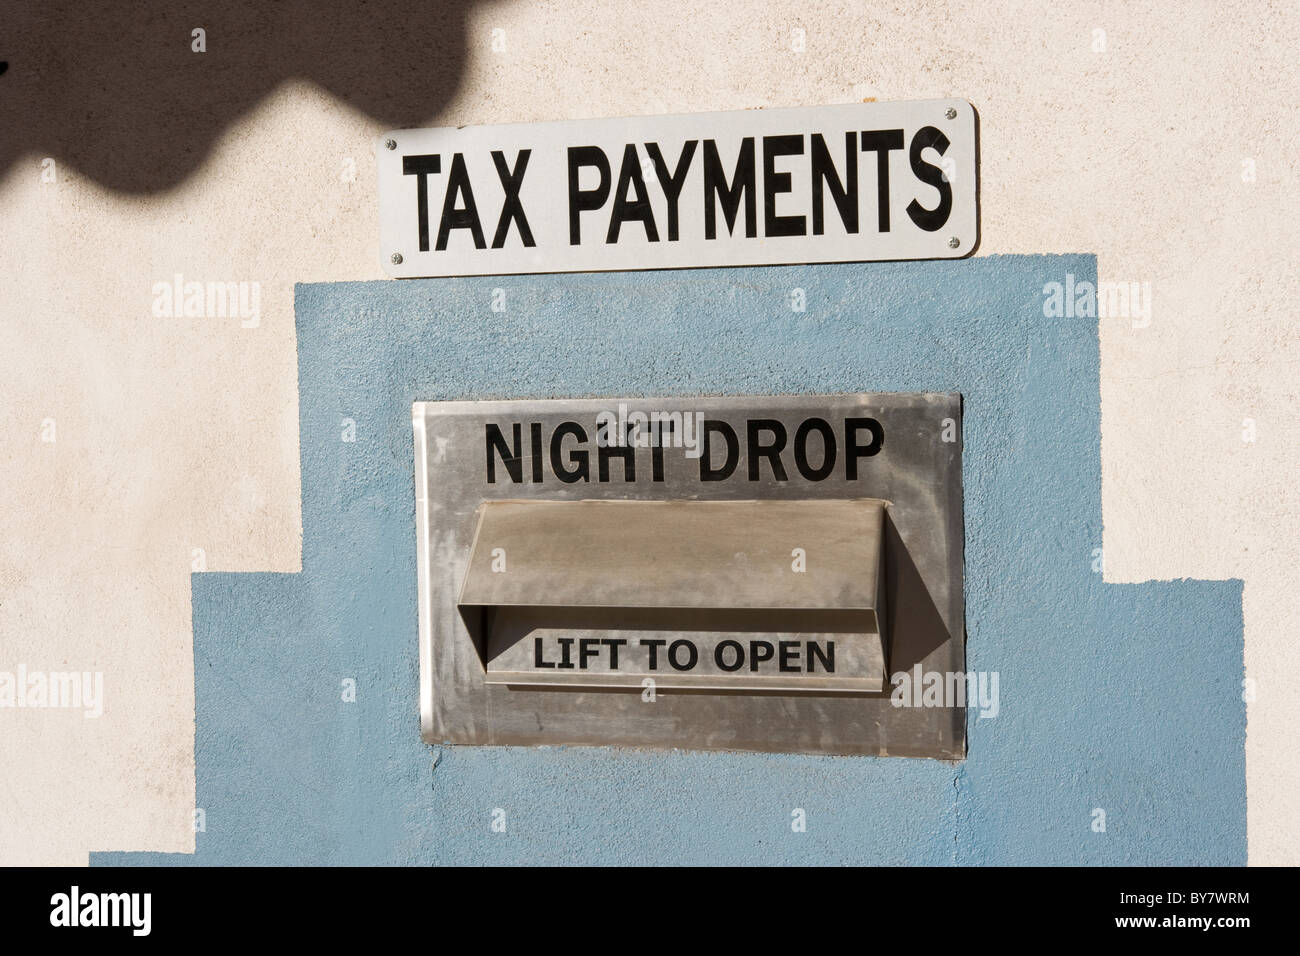 Tax Payment drop off site, Night Drop, New Mexico, USA - Stock Image